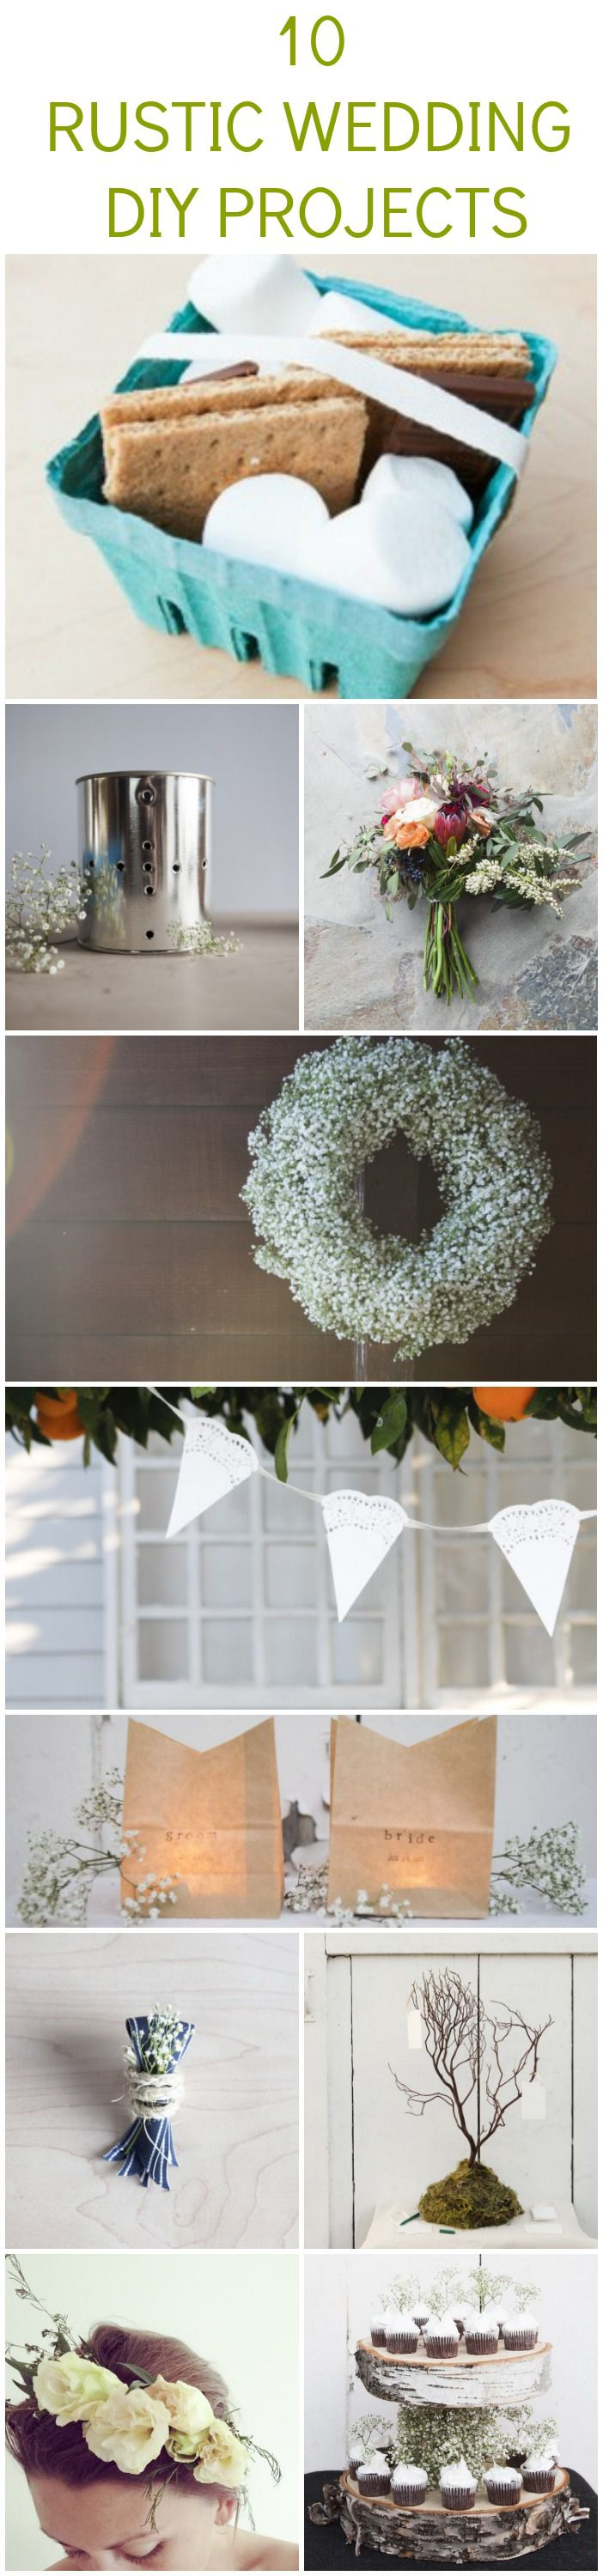 10 Rustic Wedding DIY Projects You Should Try - Rustic ...